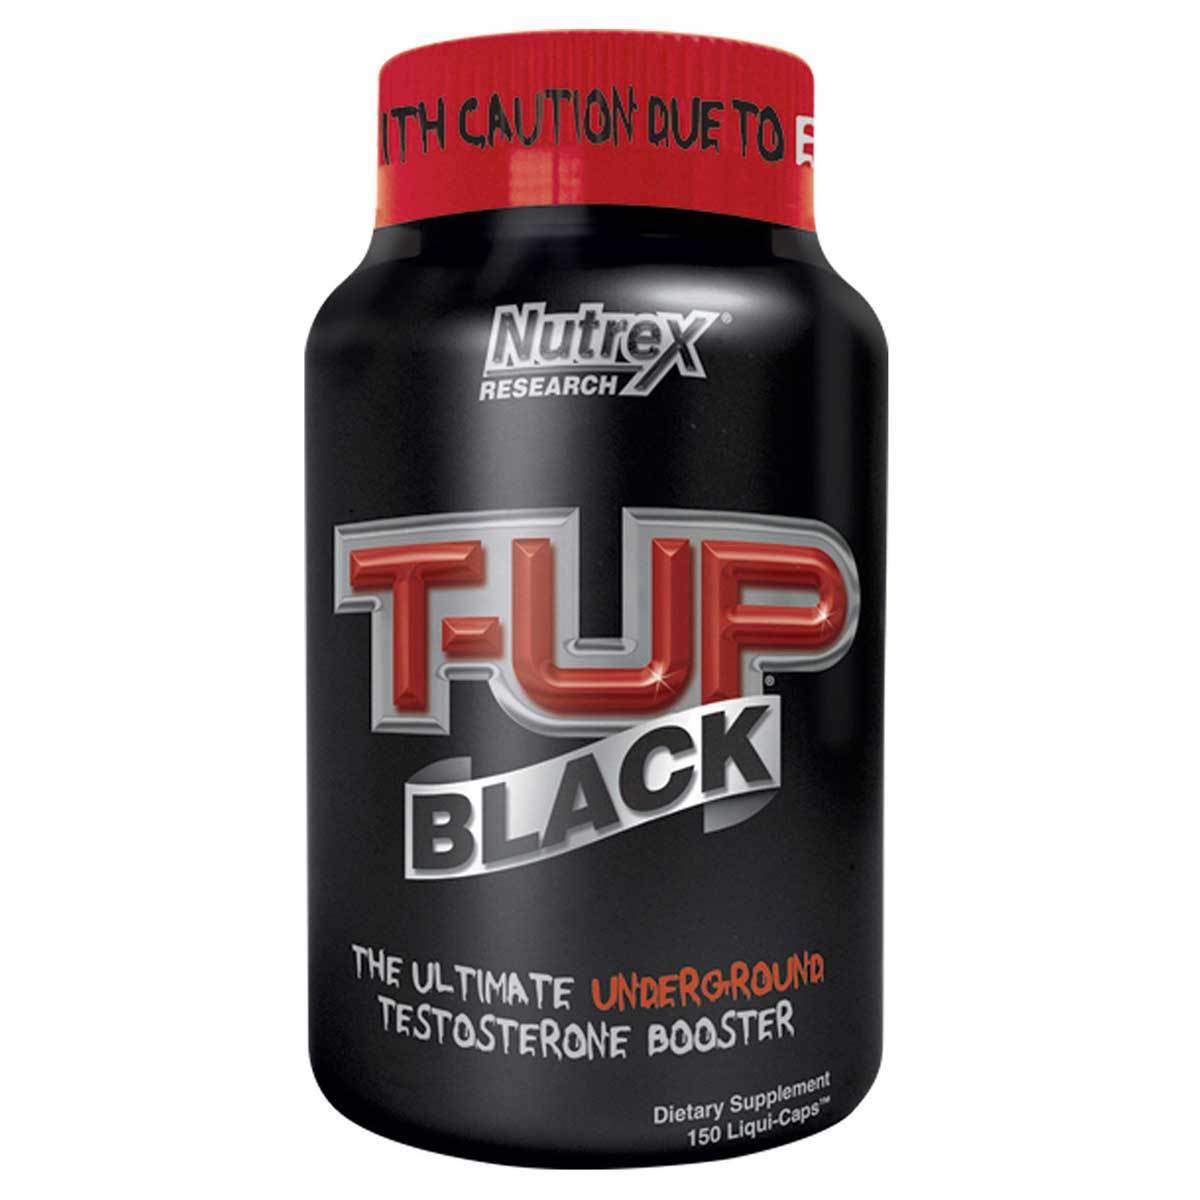 Nutrex Research T-Up Black 150 Caps Testosterone Boosters Nutrex Research  (1058313404459)